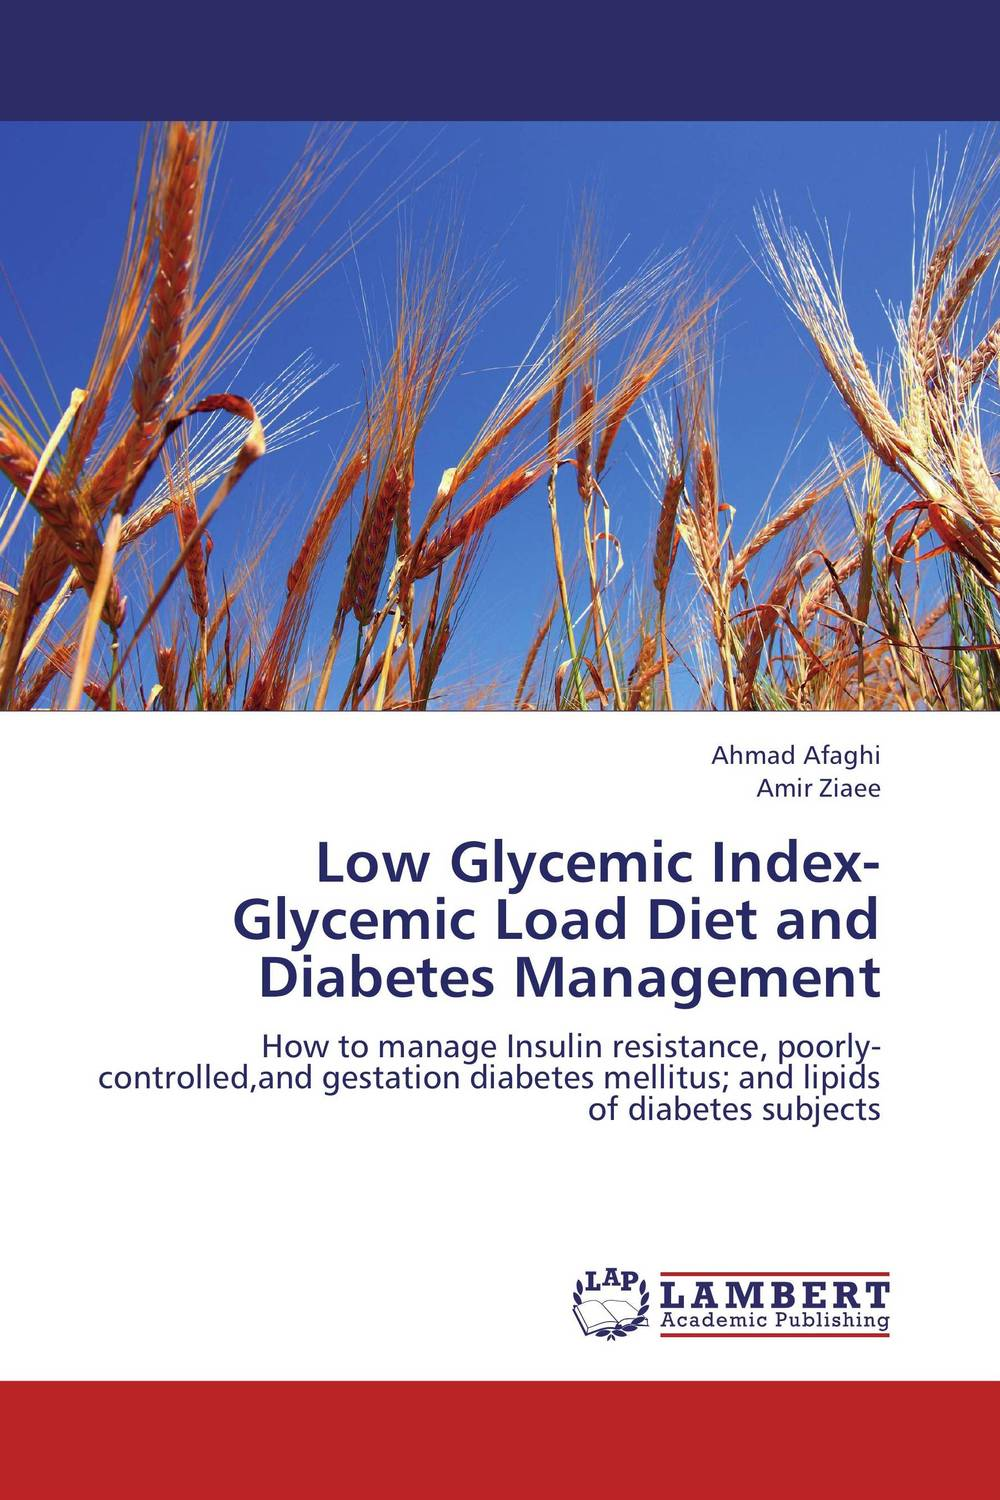 Low Glycemic Index- Glycemic Load Diet and Diabetes Management metabolic benefits of diet and exercise on type 2 diabetes